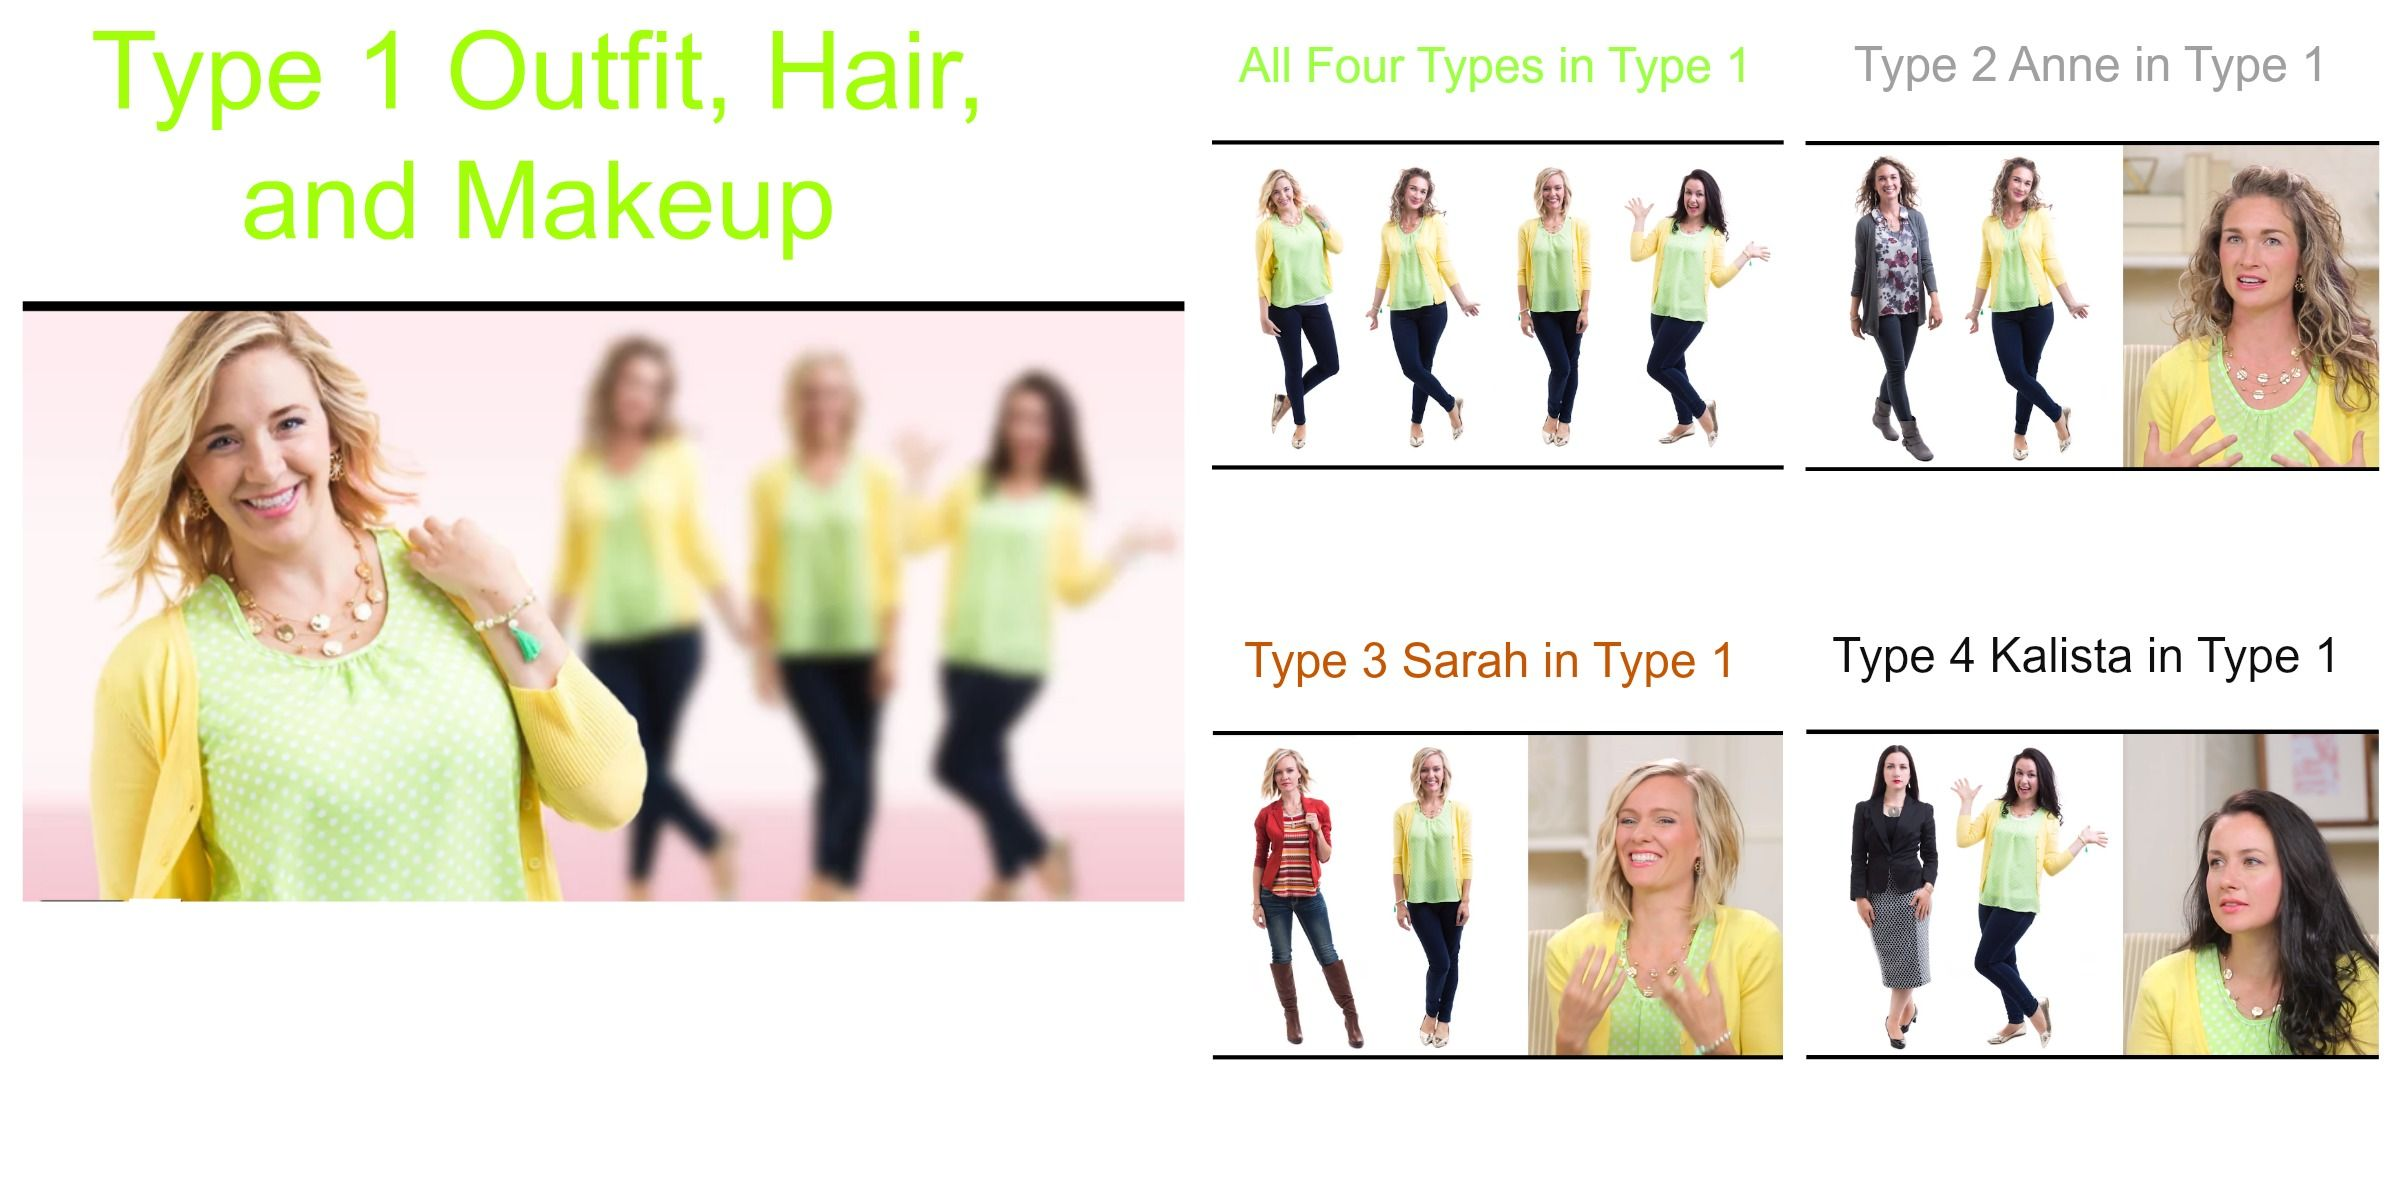 Dressing your truth type 1 how type 1 clothes work on a